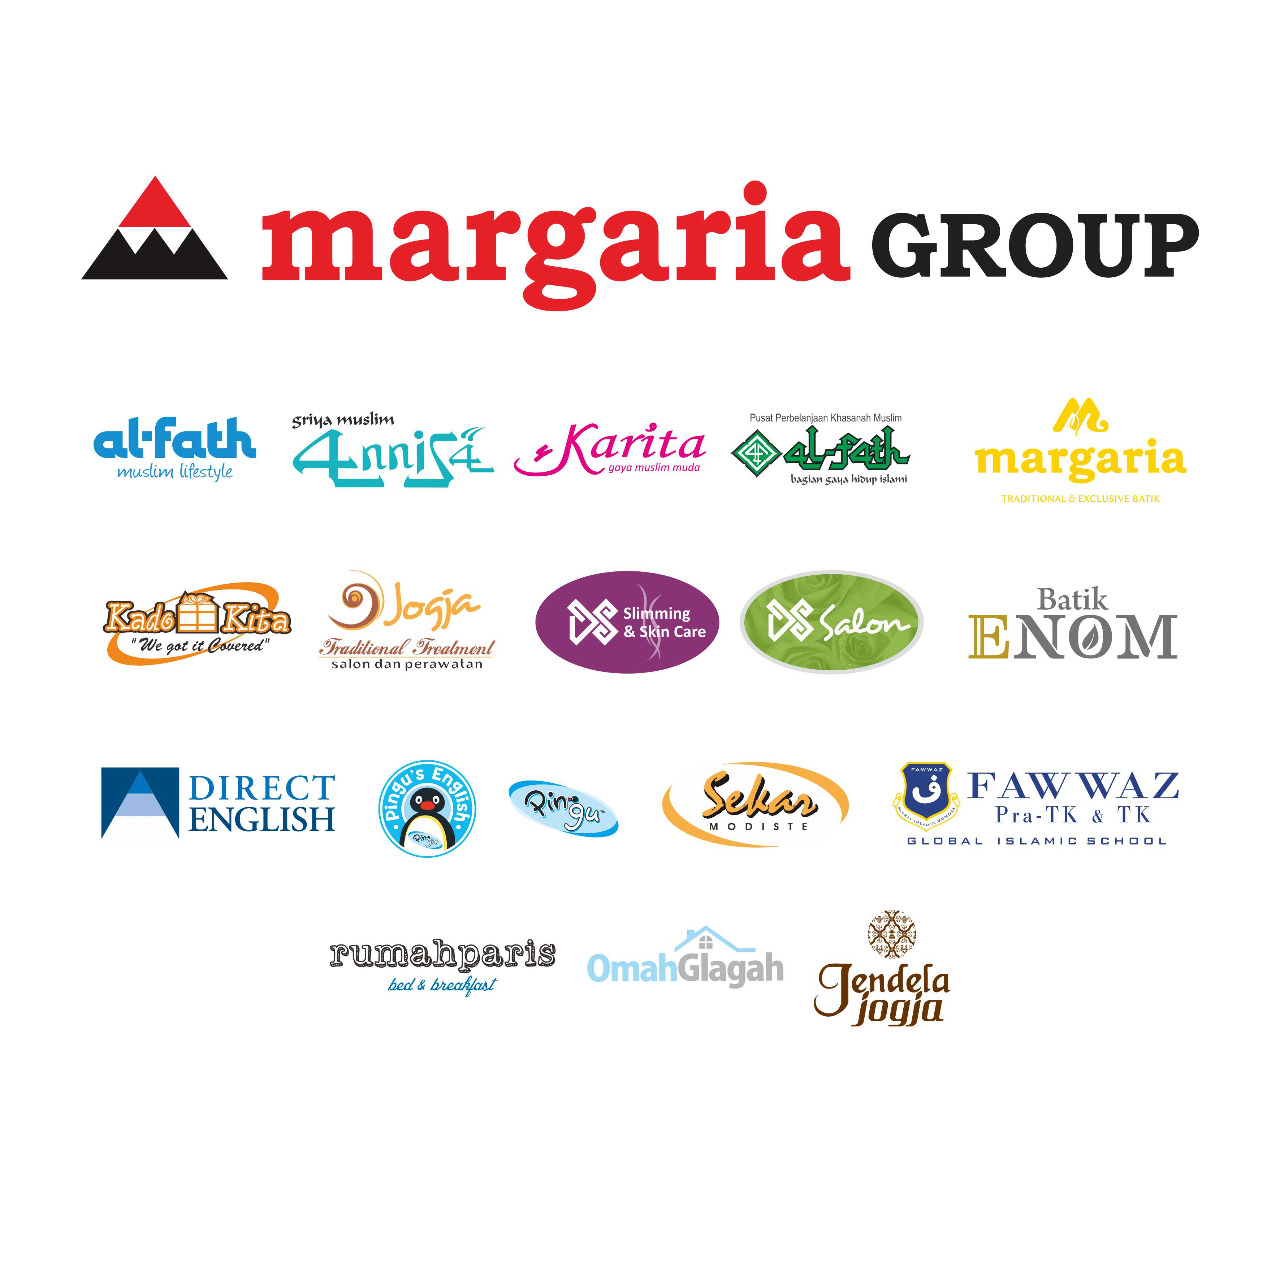 Margaria Group